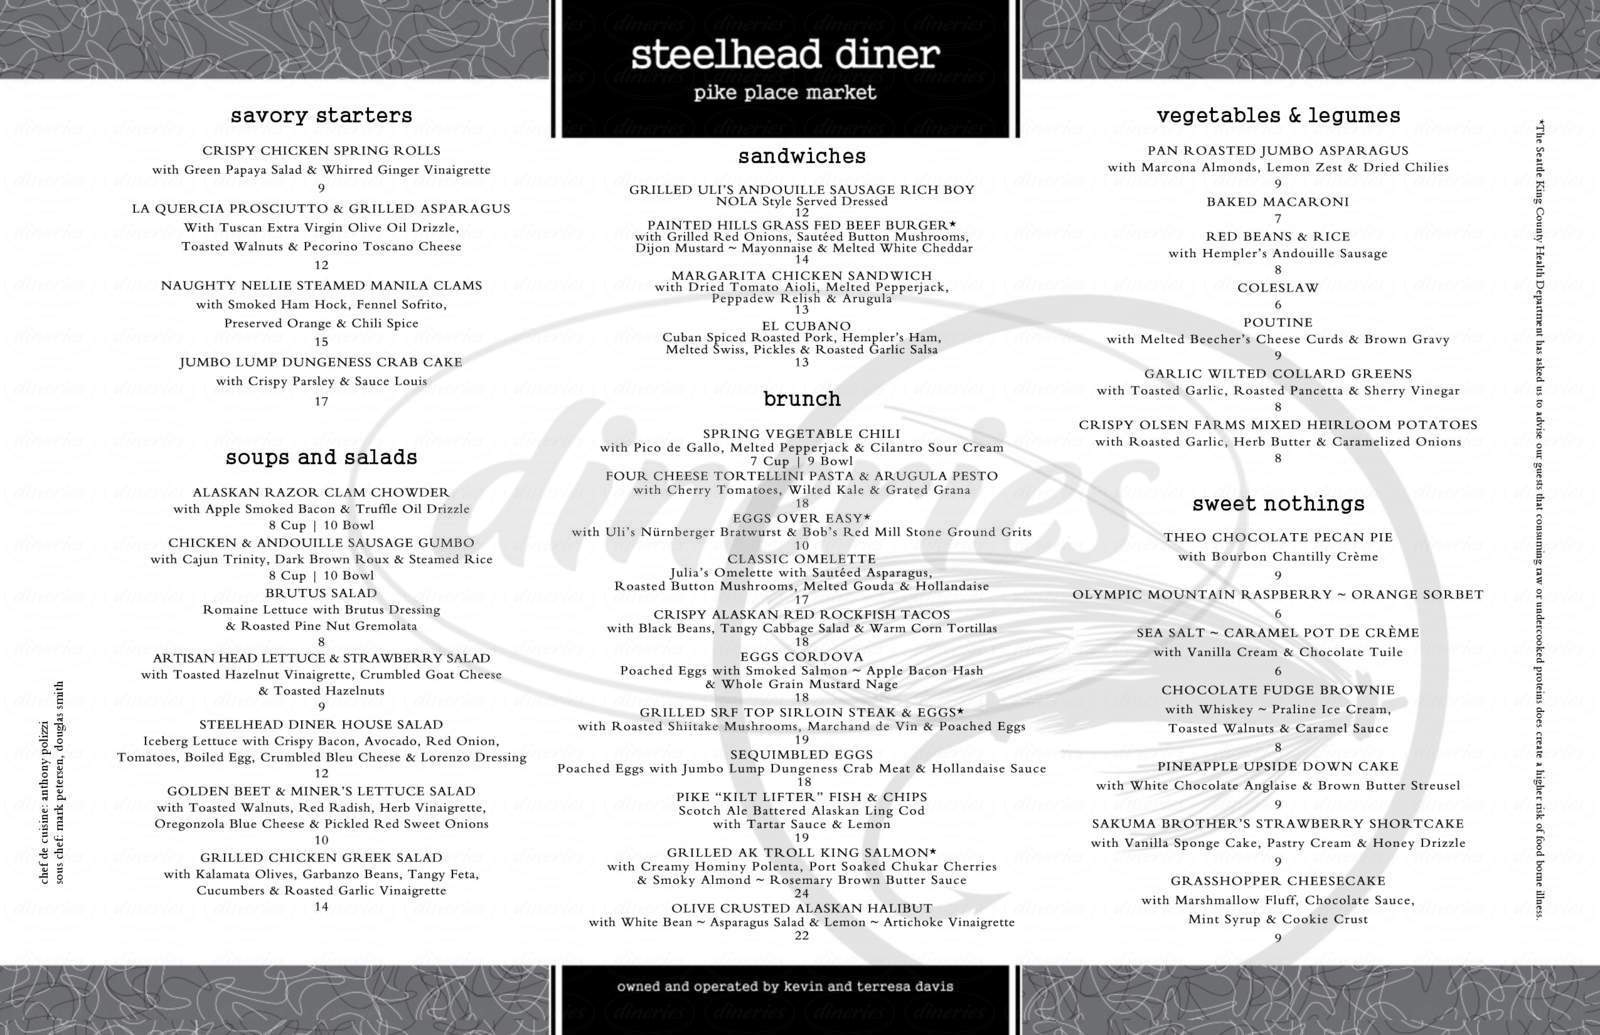 menu for Steelhead Diner